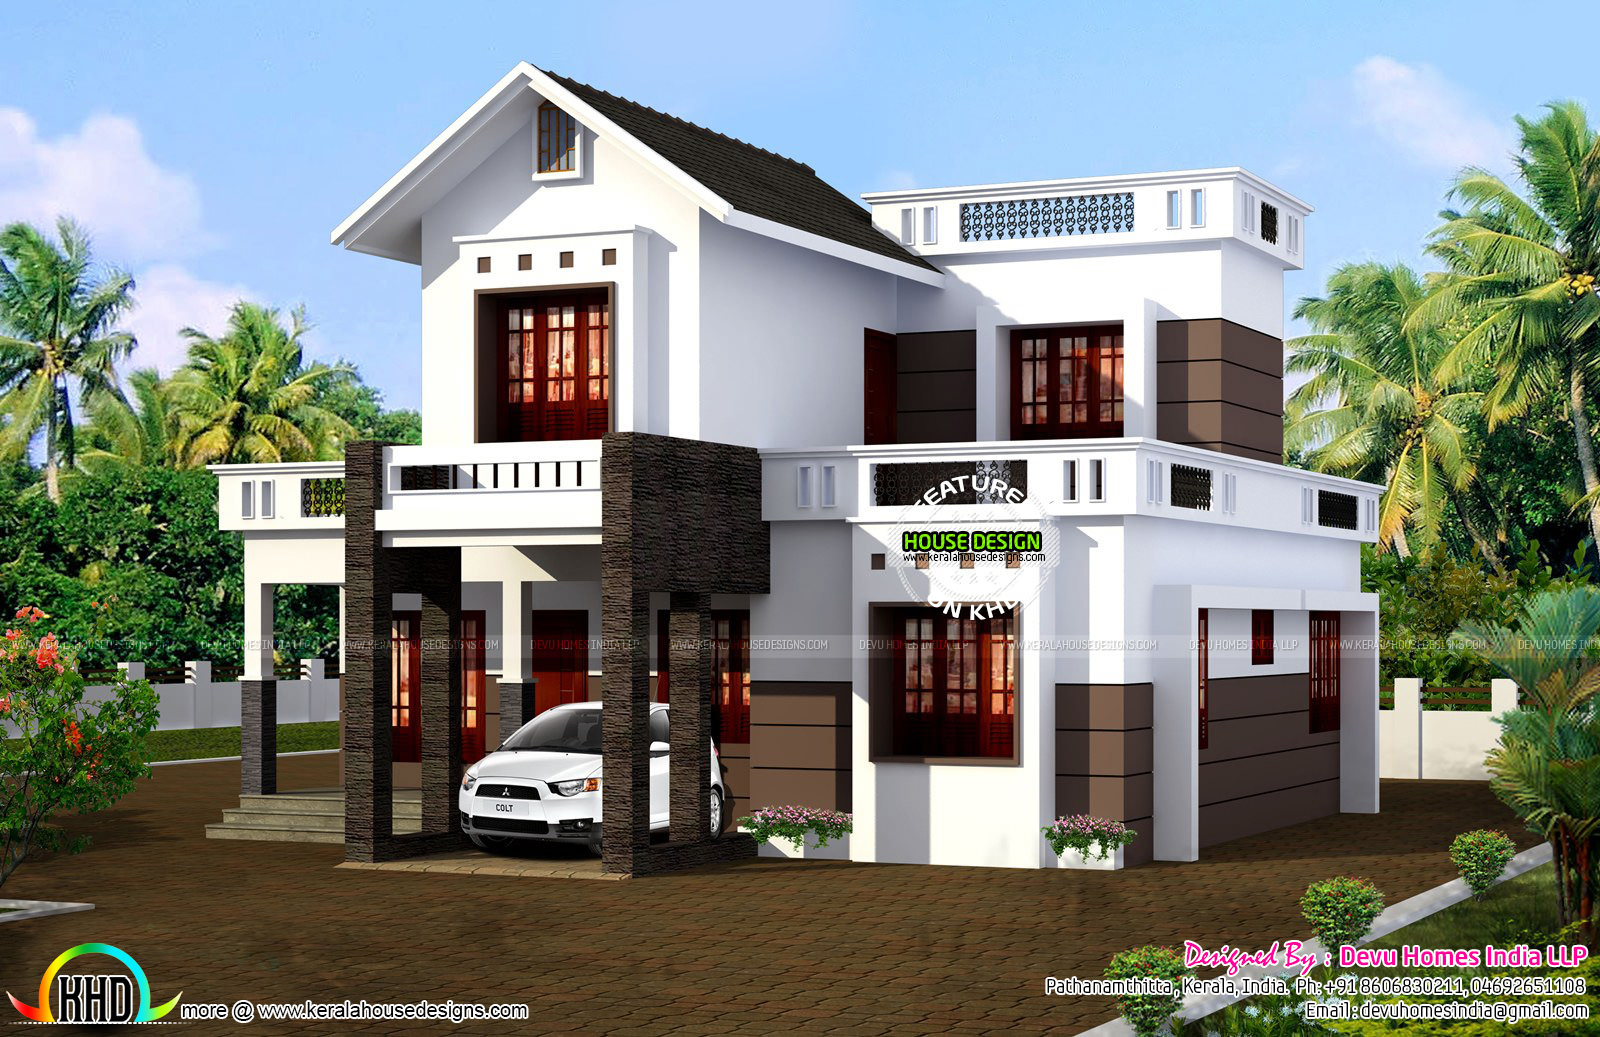 Simple 1524 sq ft house plan kerala home design and for Simple house plans in india